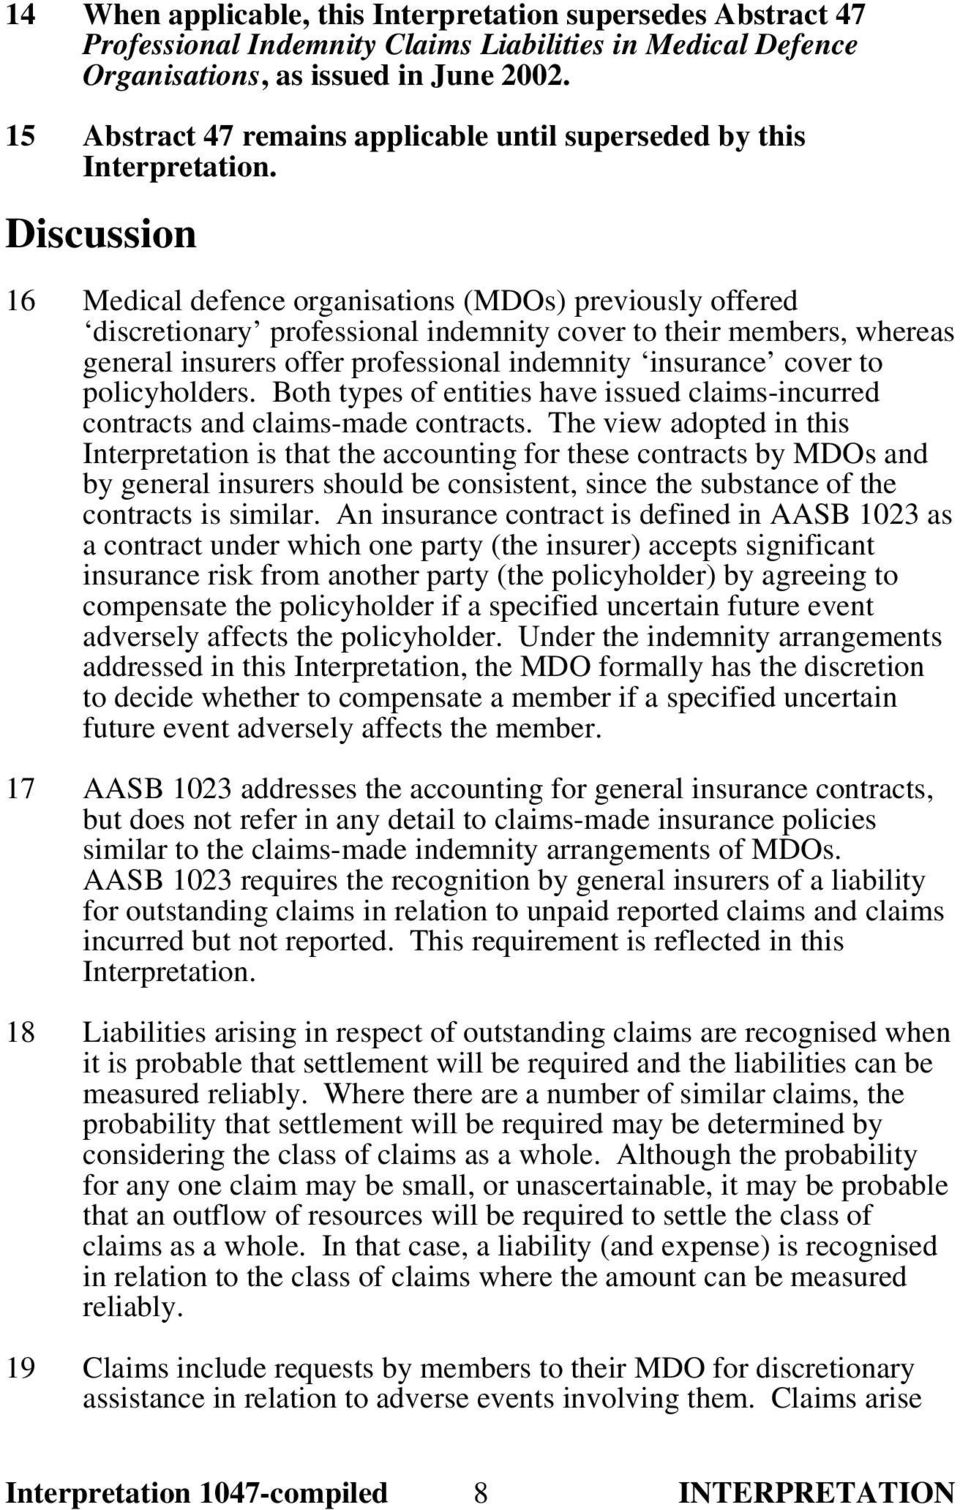 Discussion 16 Medical defence organisations (MDOs) previously offered discretionary professional indemnity cover to their members, whereas general insurers offer professional indemnity insurance